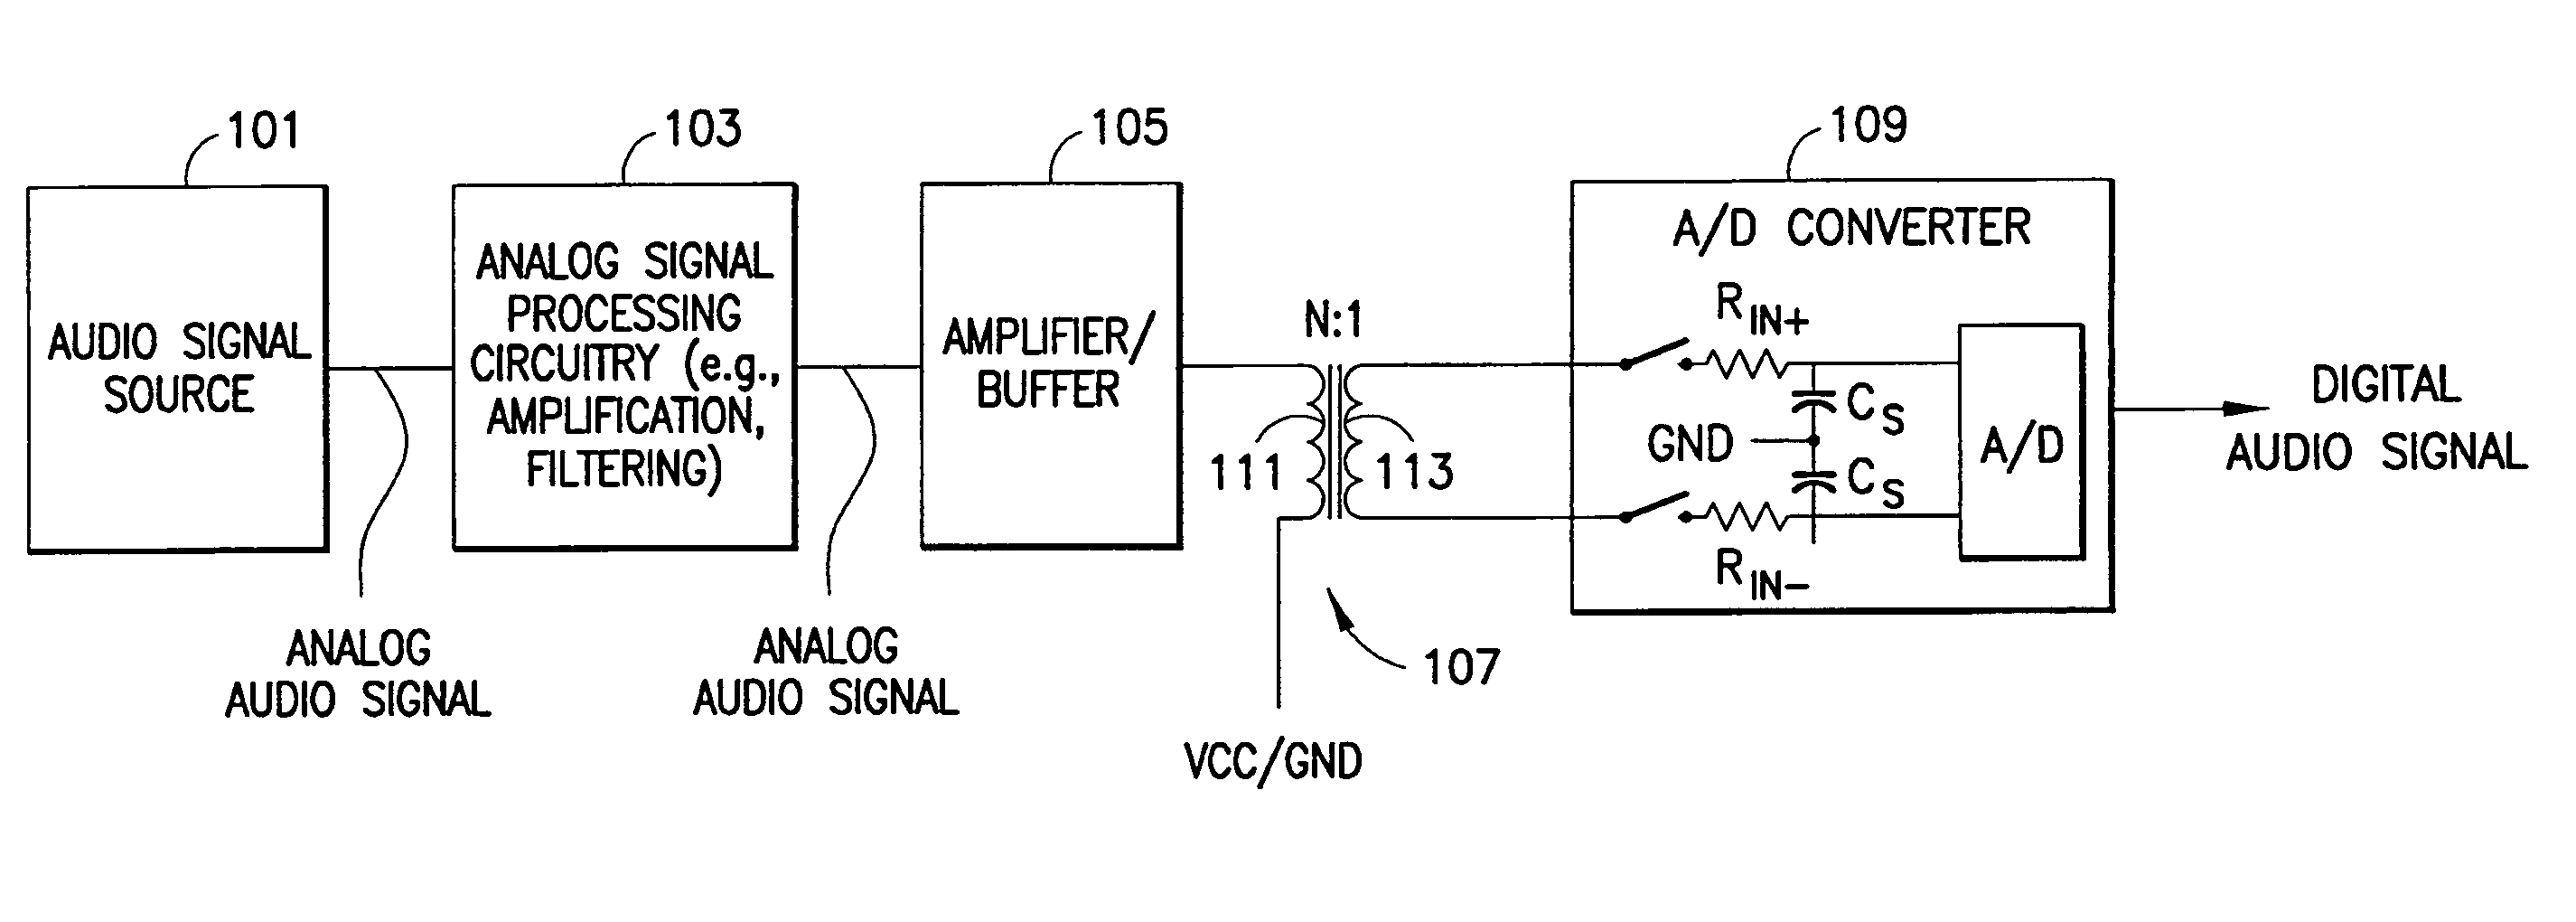 Patent Us7129872 Audio Signal Analog To Digital Converter Amplifier Circuits Drawing